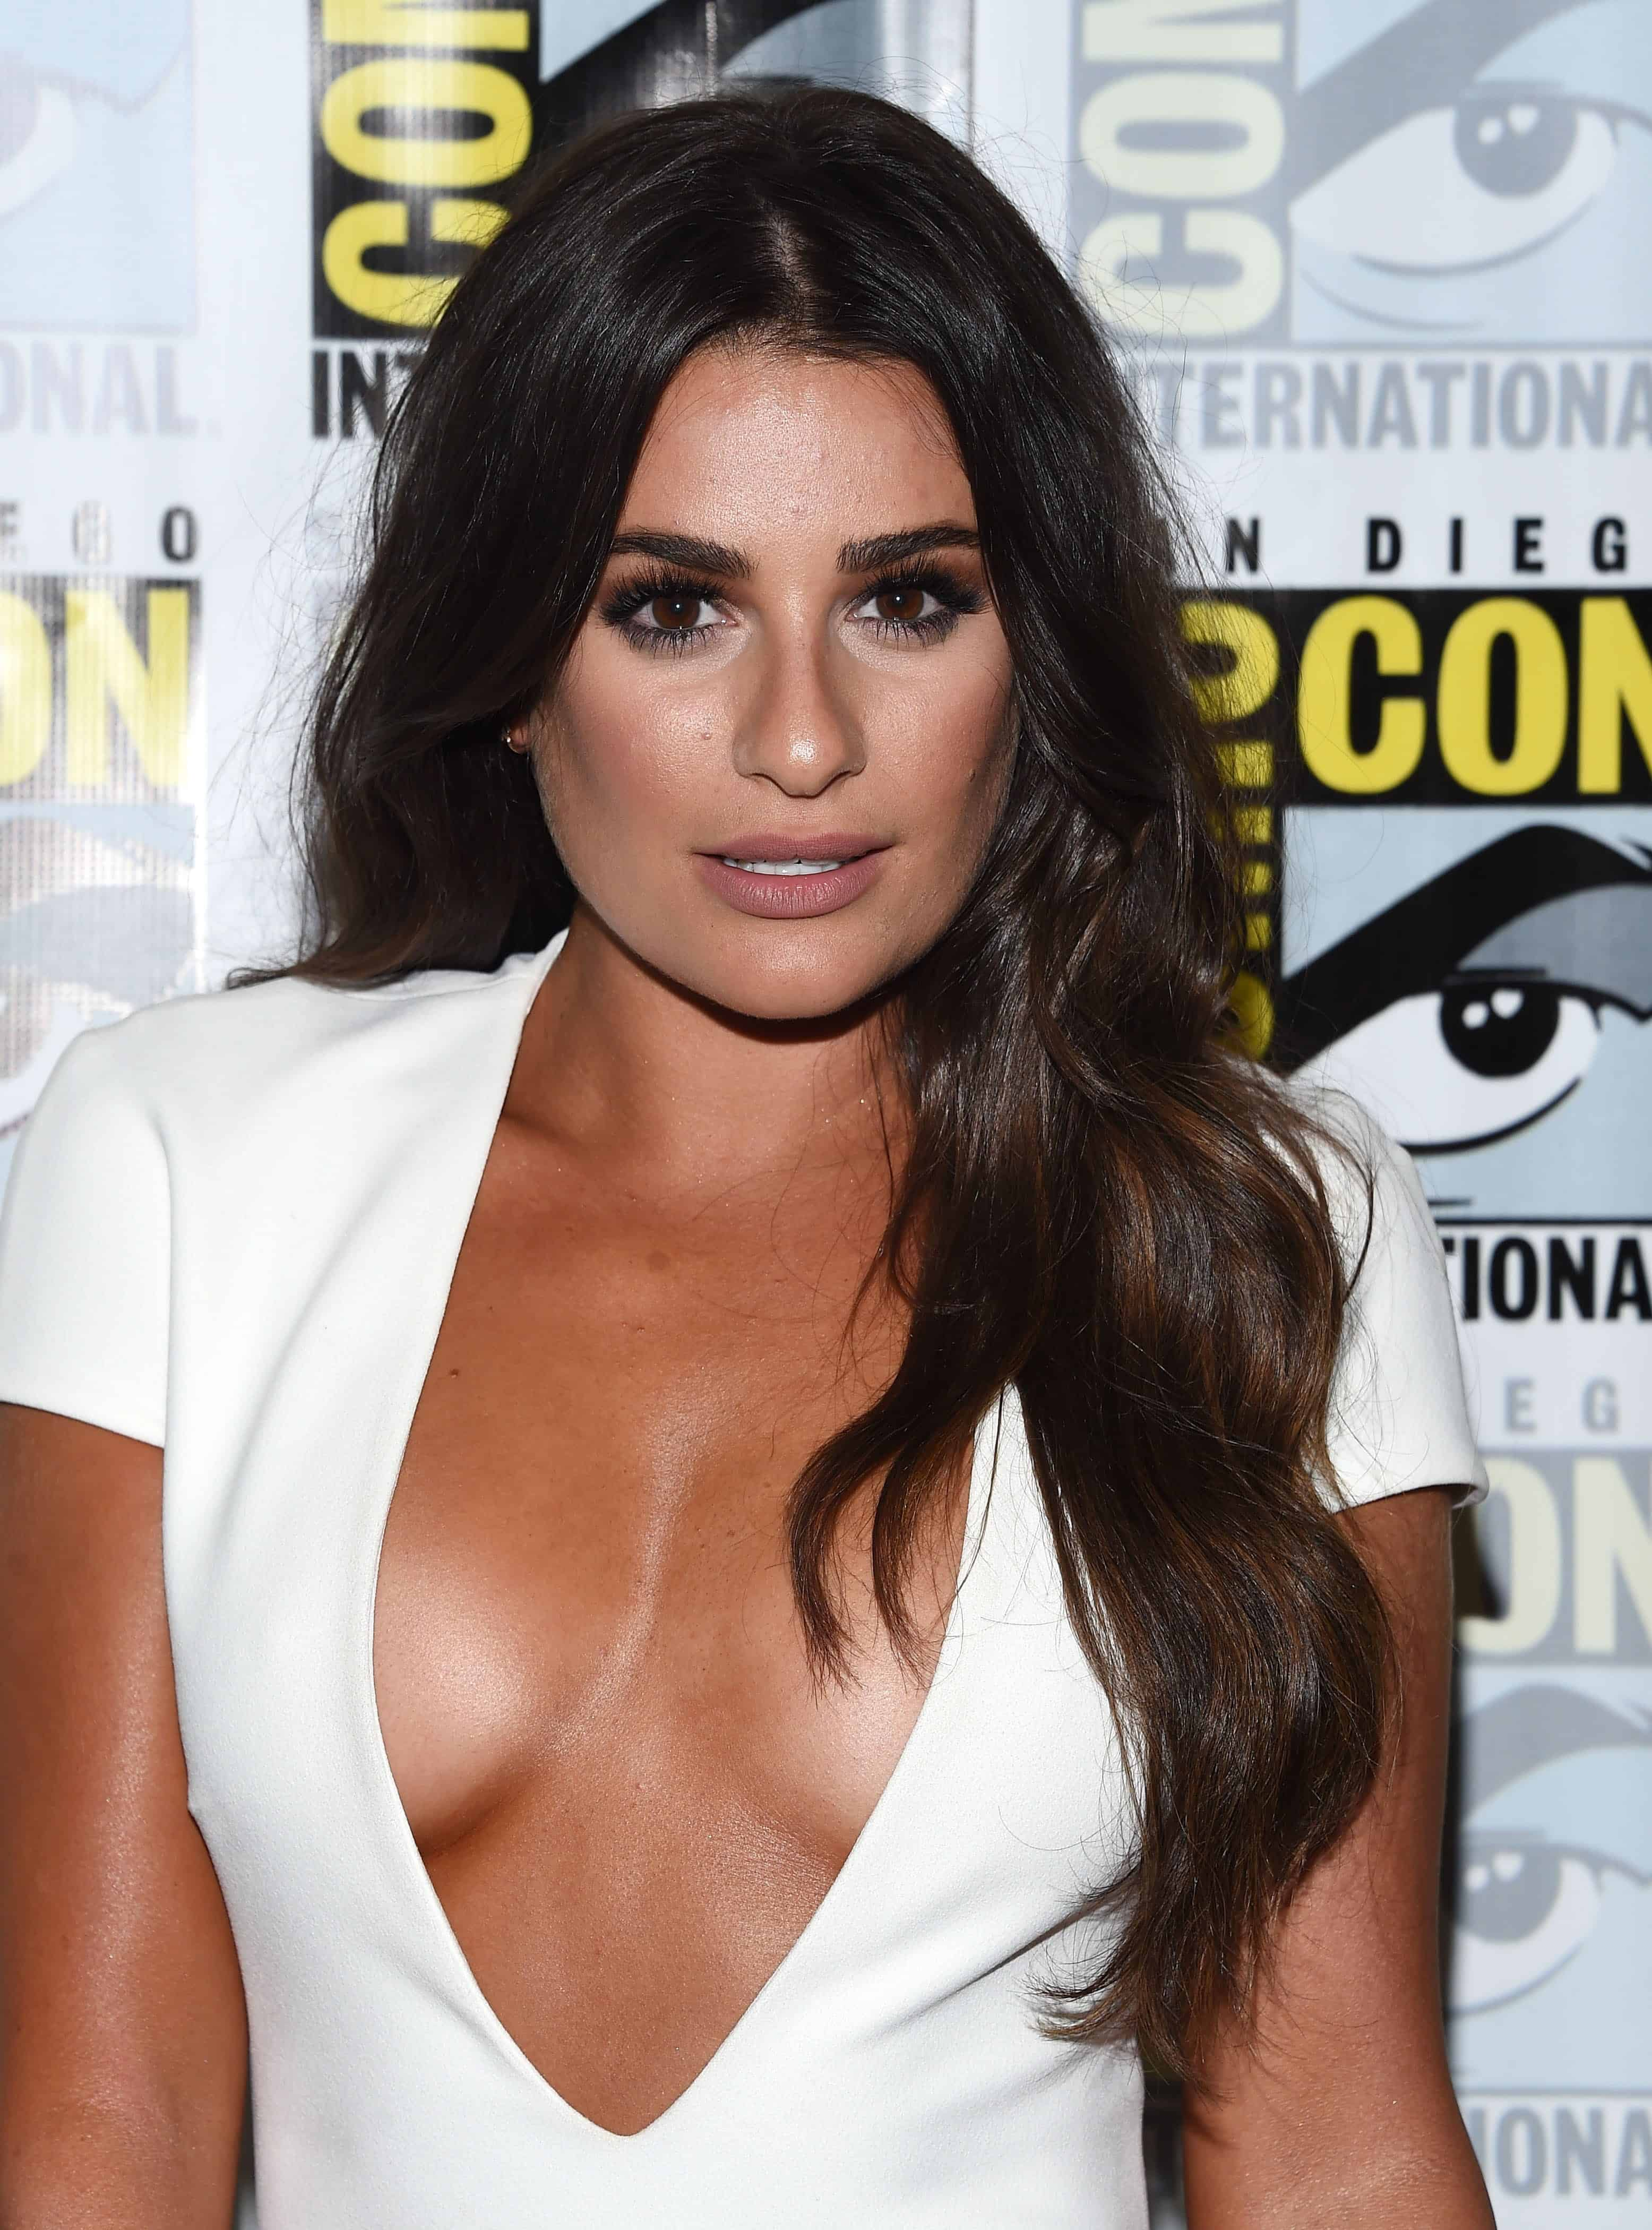 Lea Michele showed off a sophisticated allure in a loose and wavy hairstyle at the Comic Con 2016 -